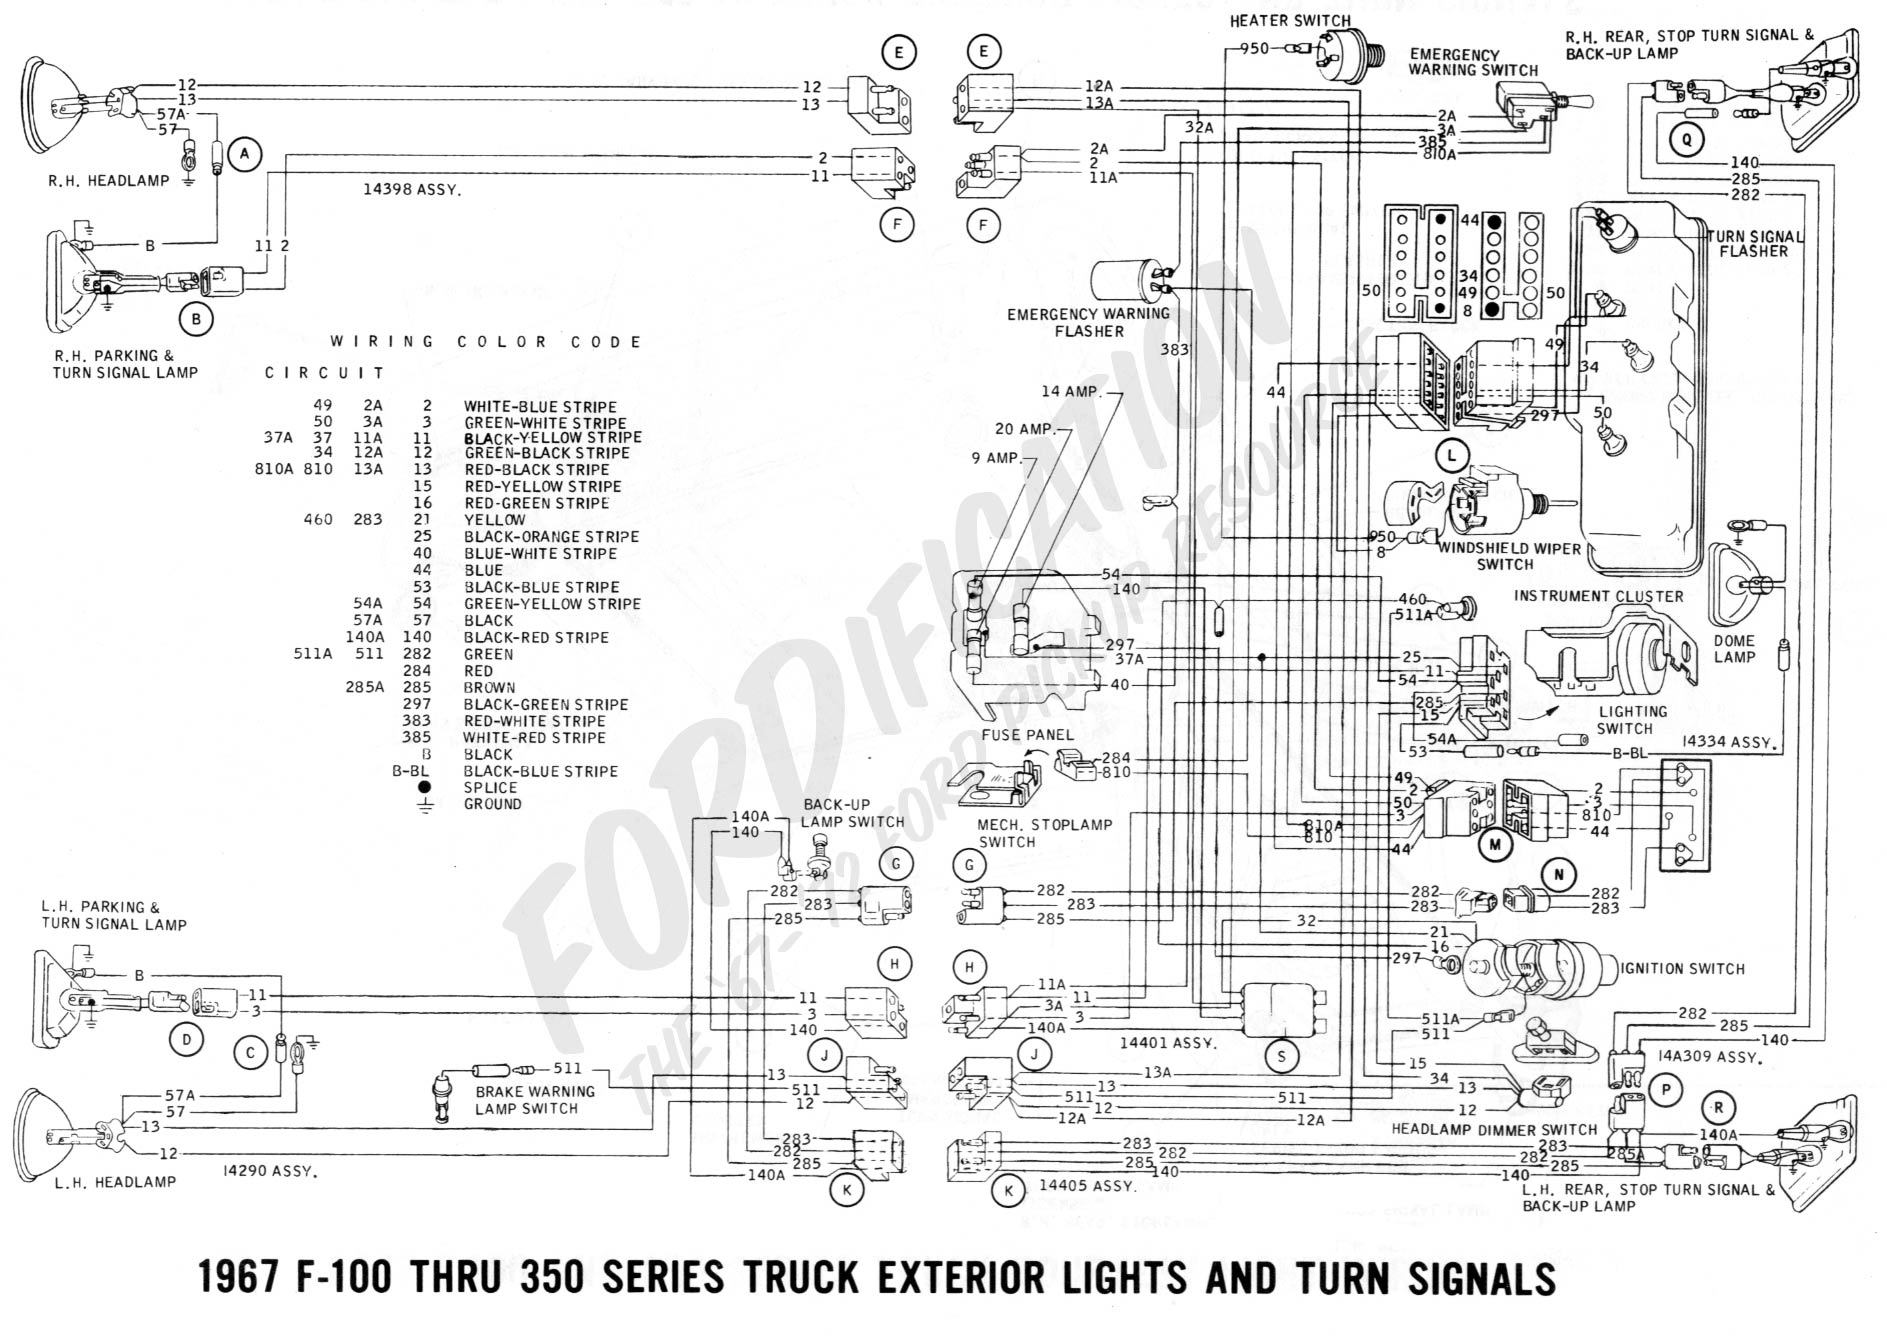 80 1967_exterior_lights_and_turn_signals_page_2_1db6c529c4c9567560e56d6320f993290ba5b803 66 mustang wiring diagram 1966 mustang dash wiring diagram 1969 mustang alternator wiring diagram at n-0.co